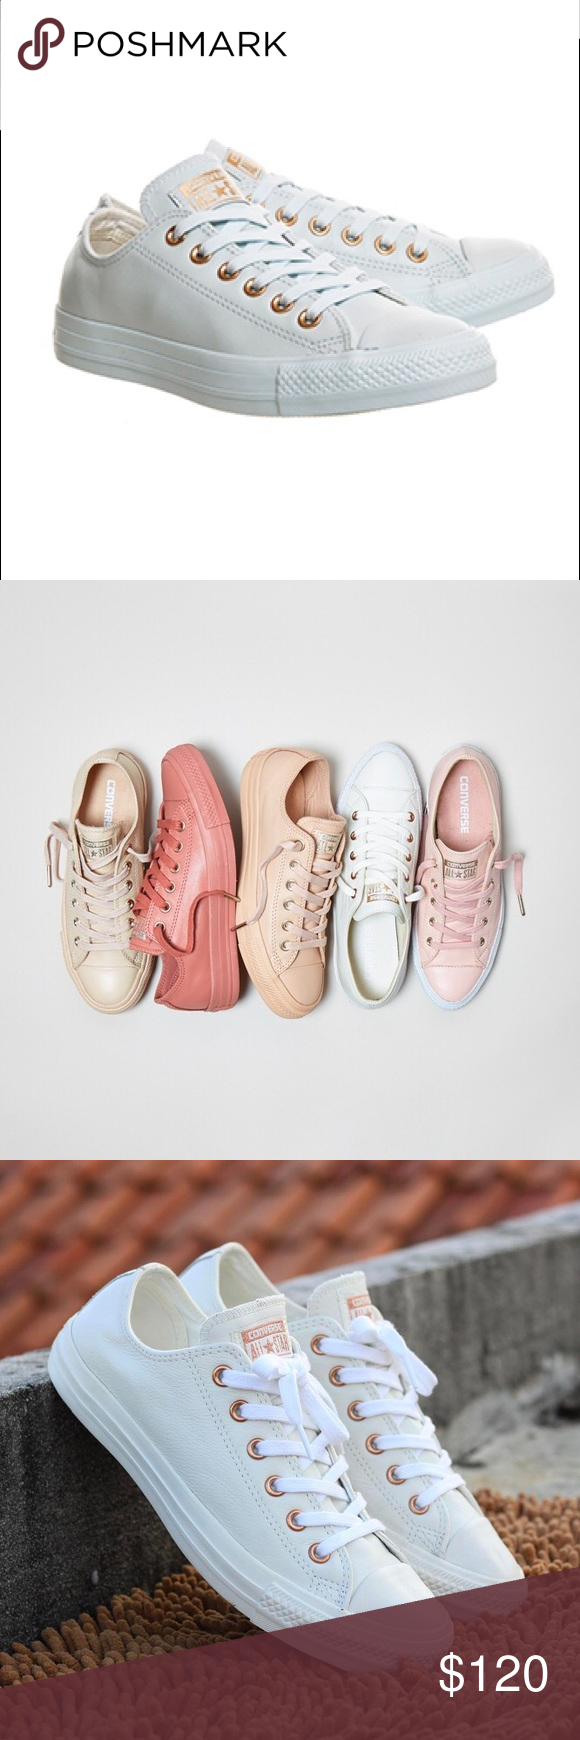 c457767118852f Converse Leather Powder Blue Rose Gold Exclusive These are exclusives that  only sold in UK and are sold out already. I ordered them online and just  received ...